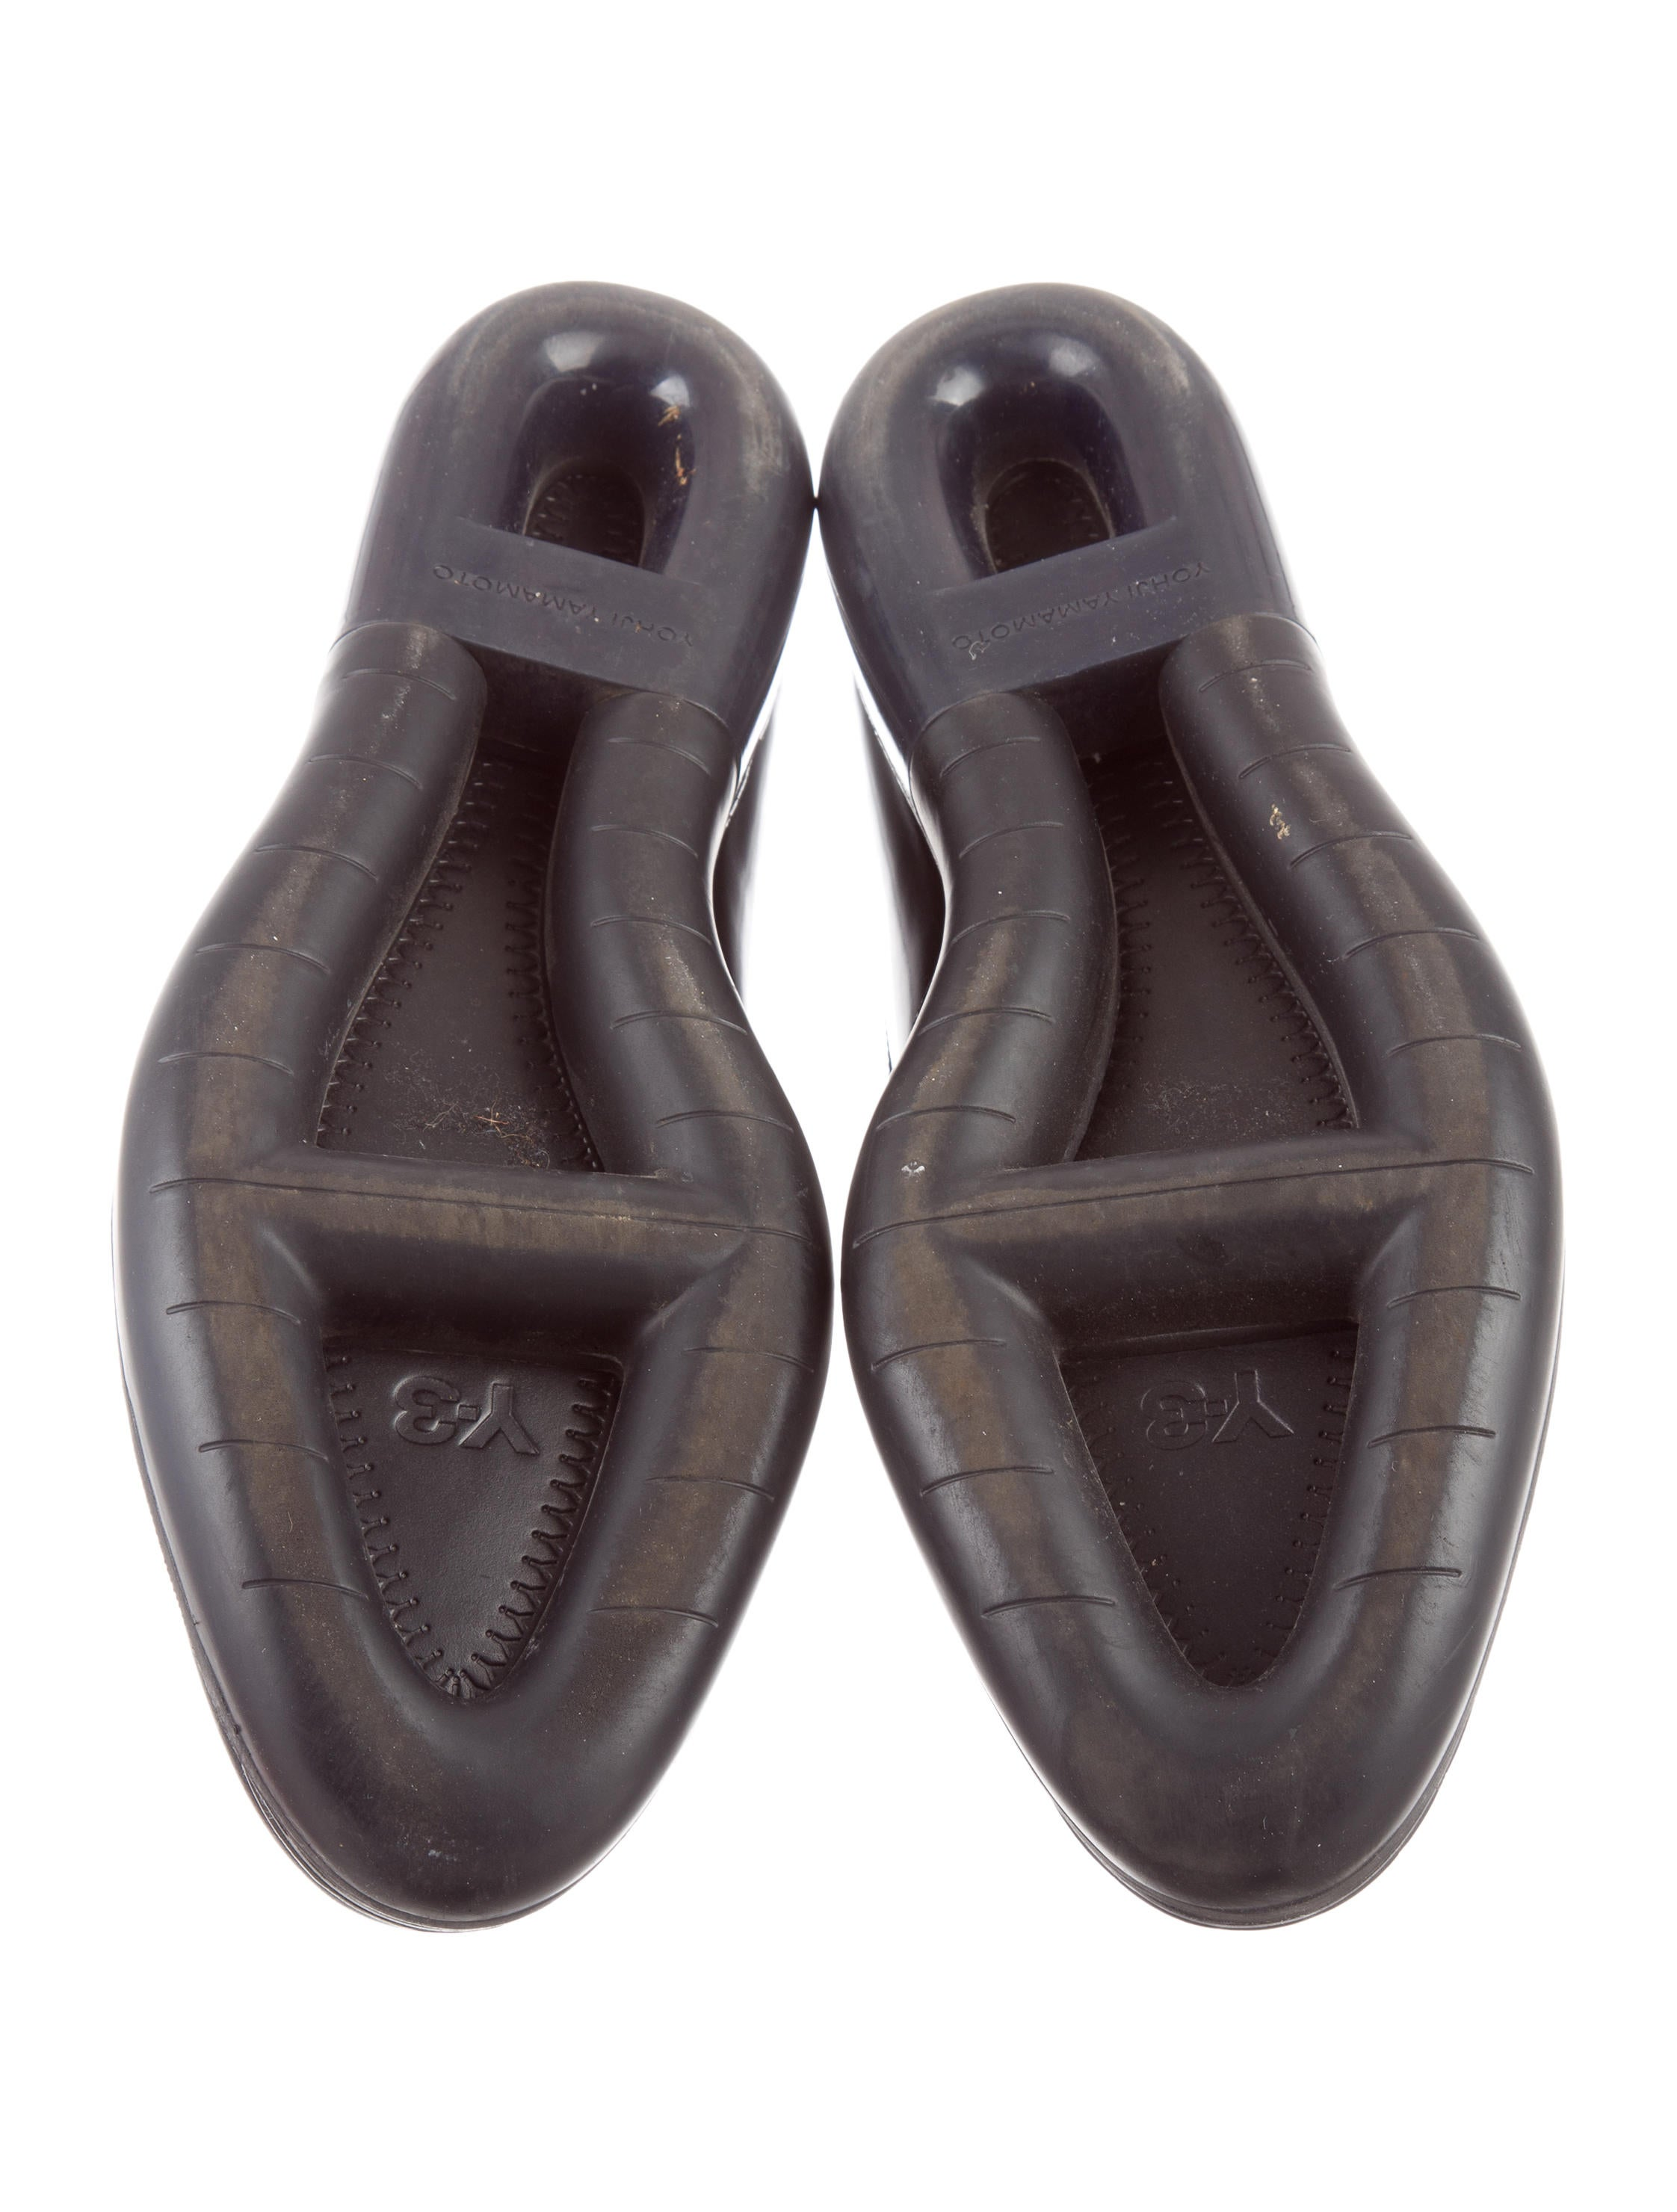 Y-3 X Adidas Leather Round-Toe Loafers - Shoes - WY3AD20555   The RealReal